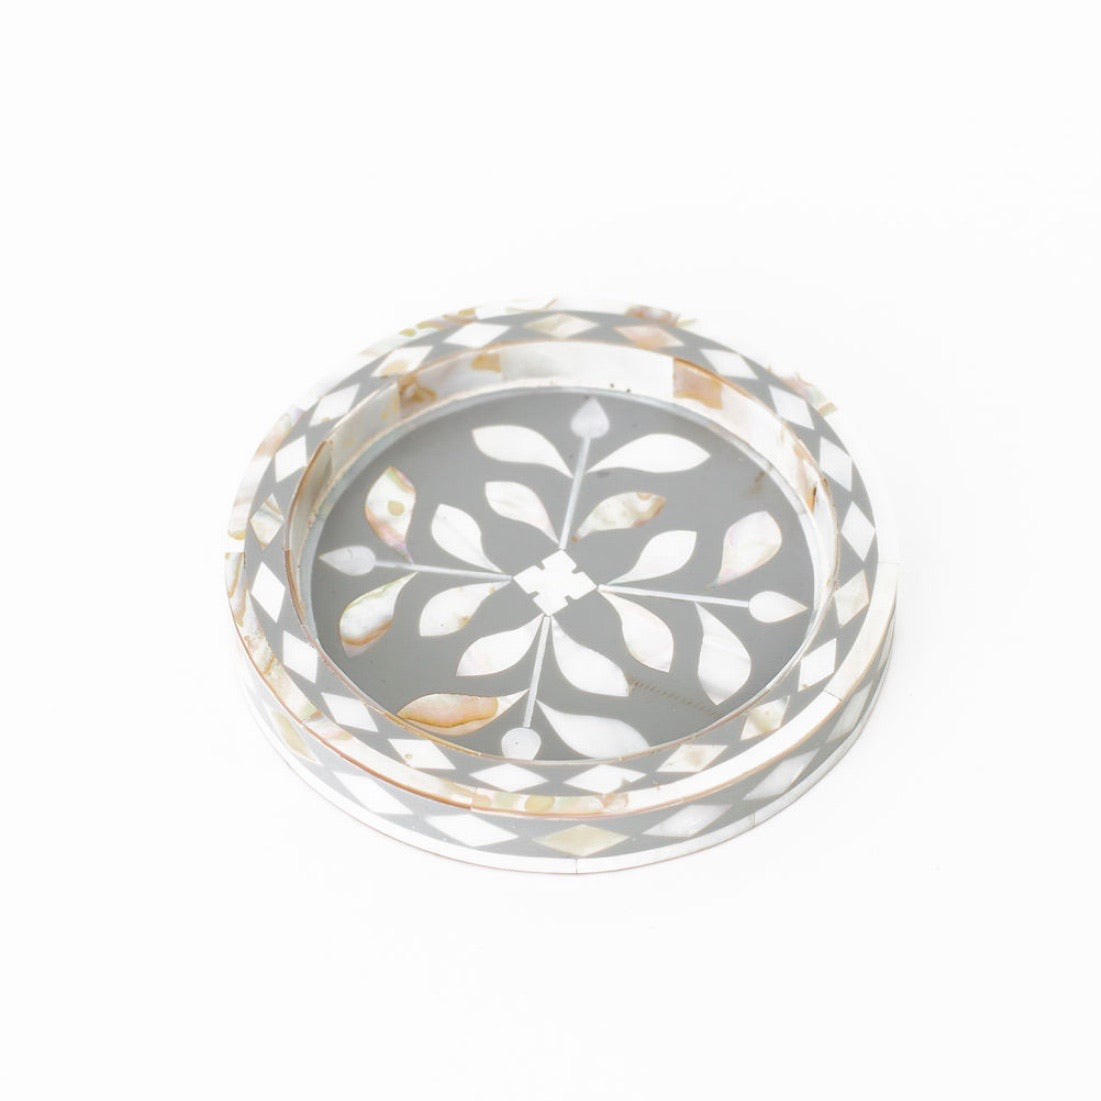 Petite Round Tray Collection